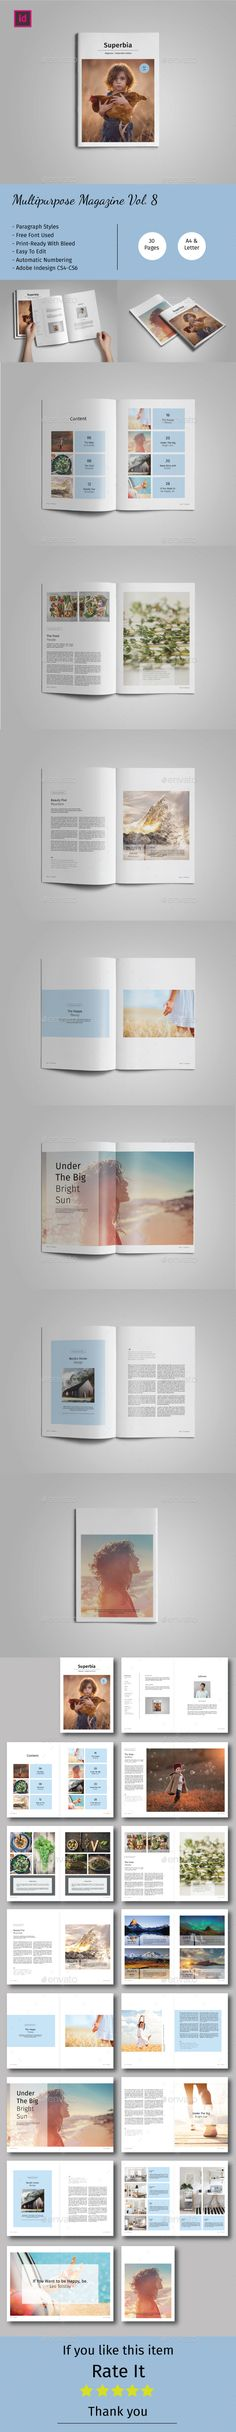 Multipurpose Magazine 30 Pages A4 & US Letter size Template InDesign INDD